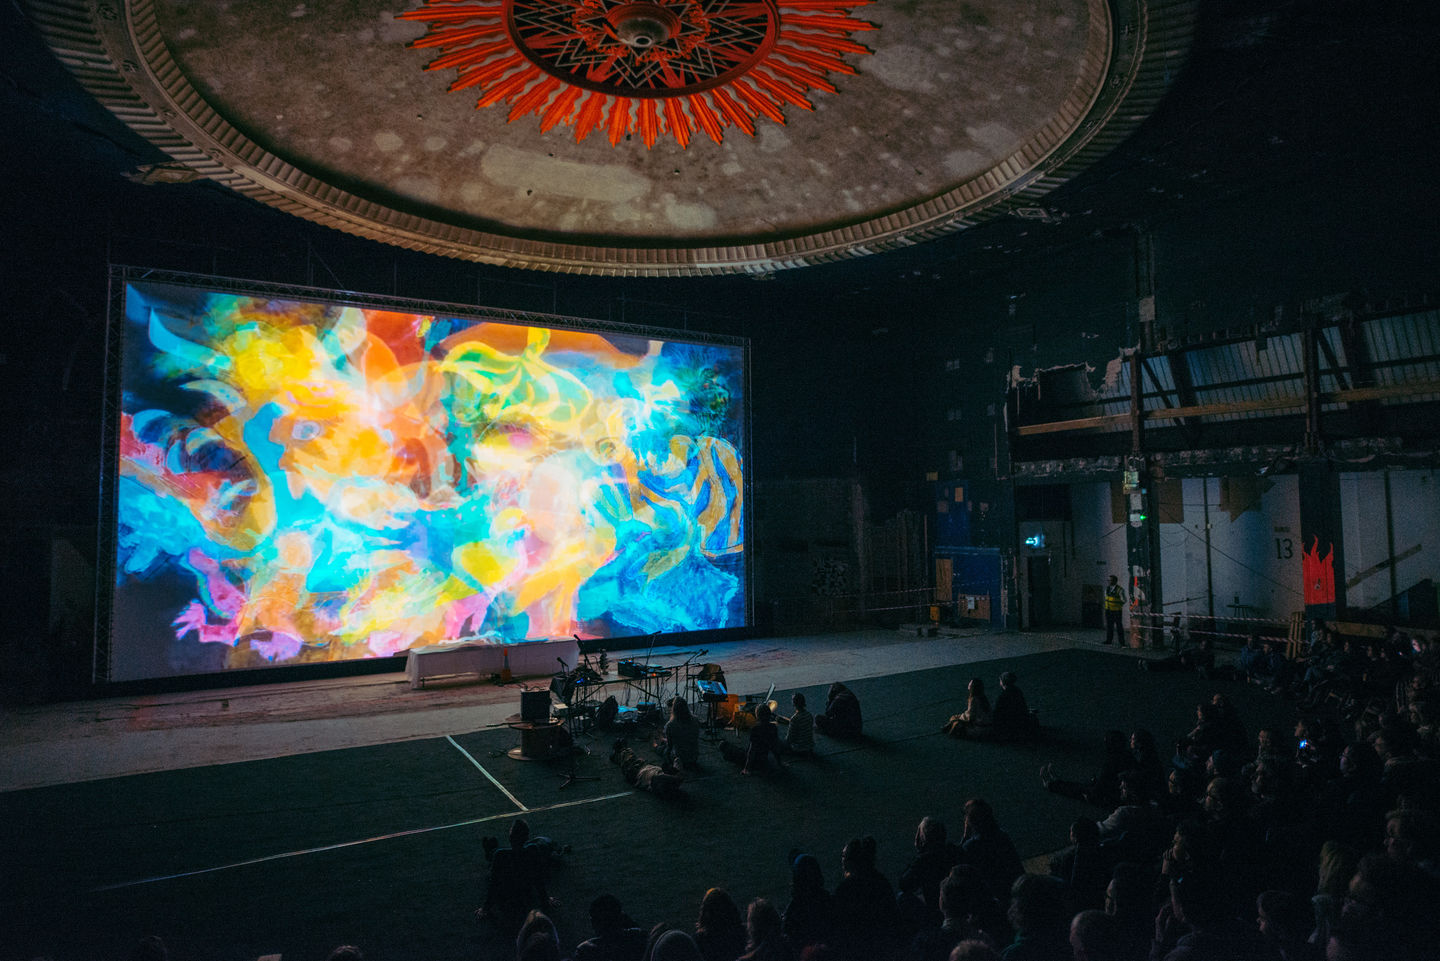 large screen in disused venue with audience area